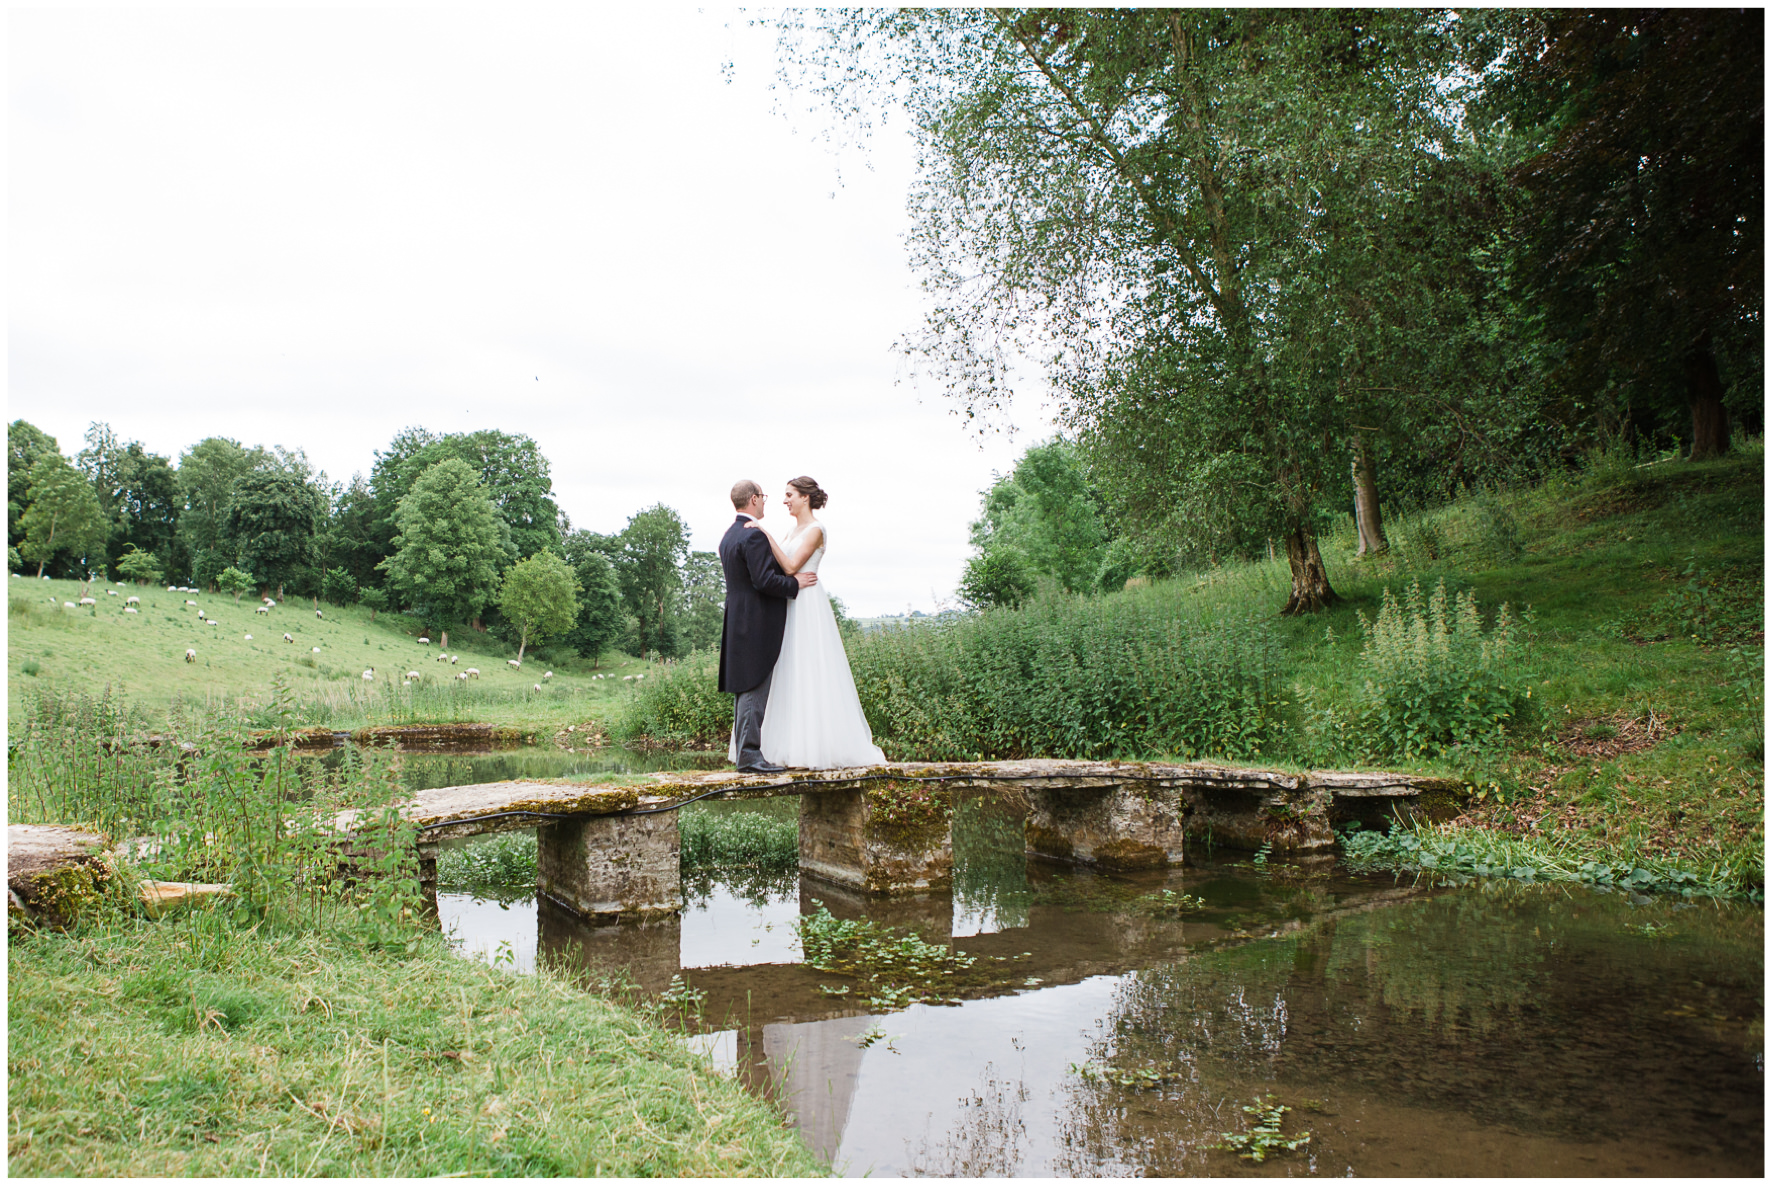 Lucy Davenport Photography, Cornwell Manor, wedding venue, Oxfordshire, Cotswold wedding, bride and groom, bridal couple, couple portraits, stream, bridge, reflection